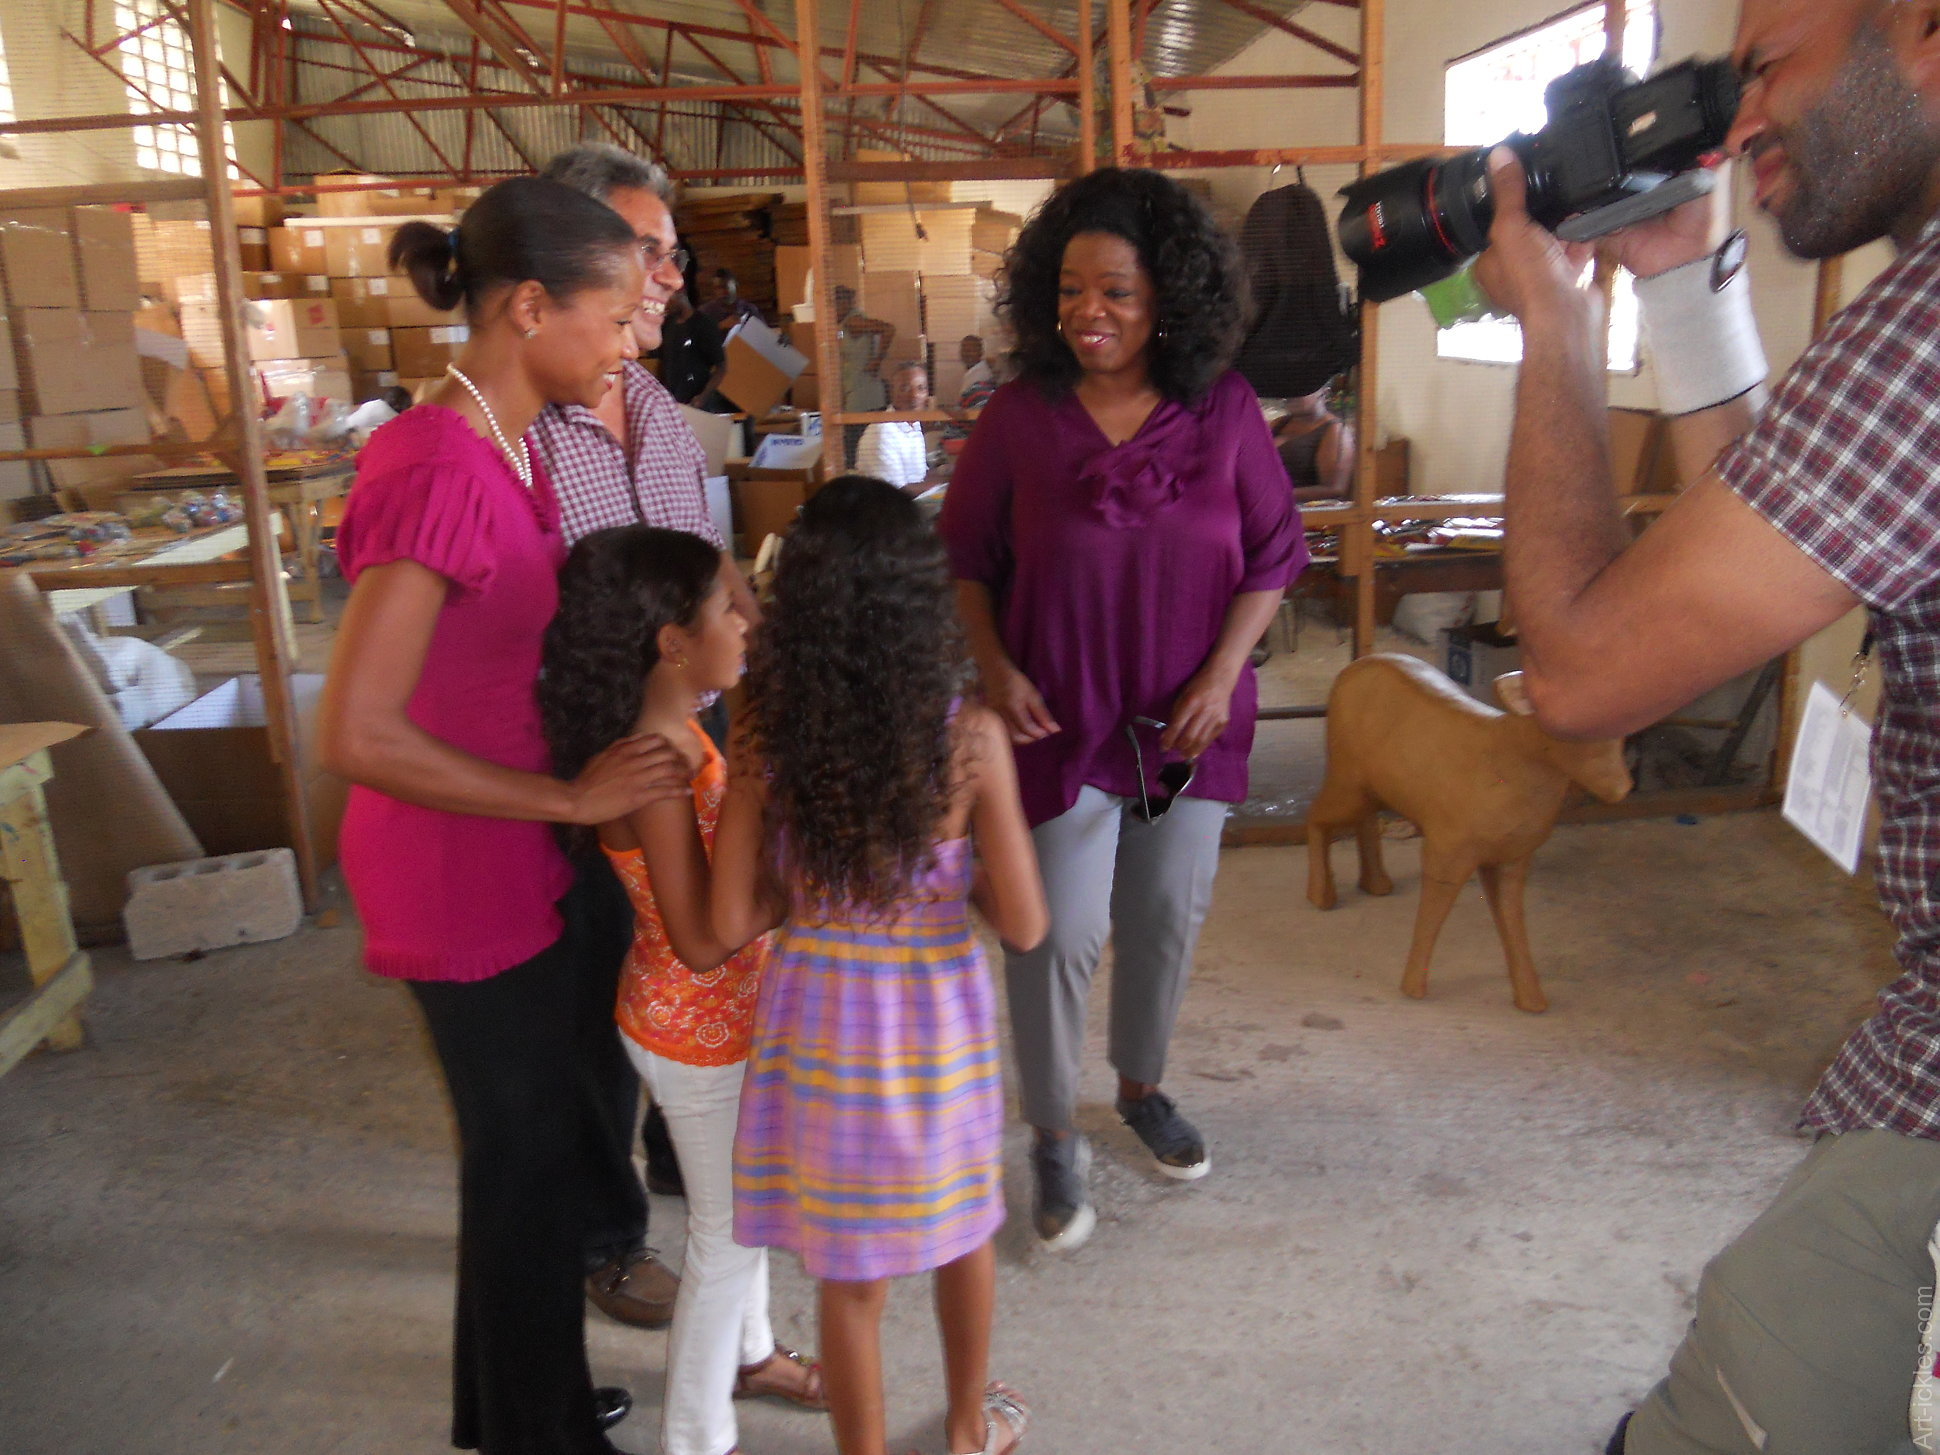 Oprah Winfrey being introduced to Magalie's And Joel Dresse's daughters, Kiana and Leah.